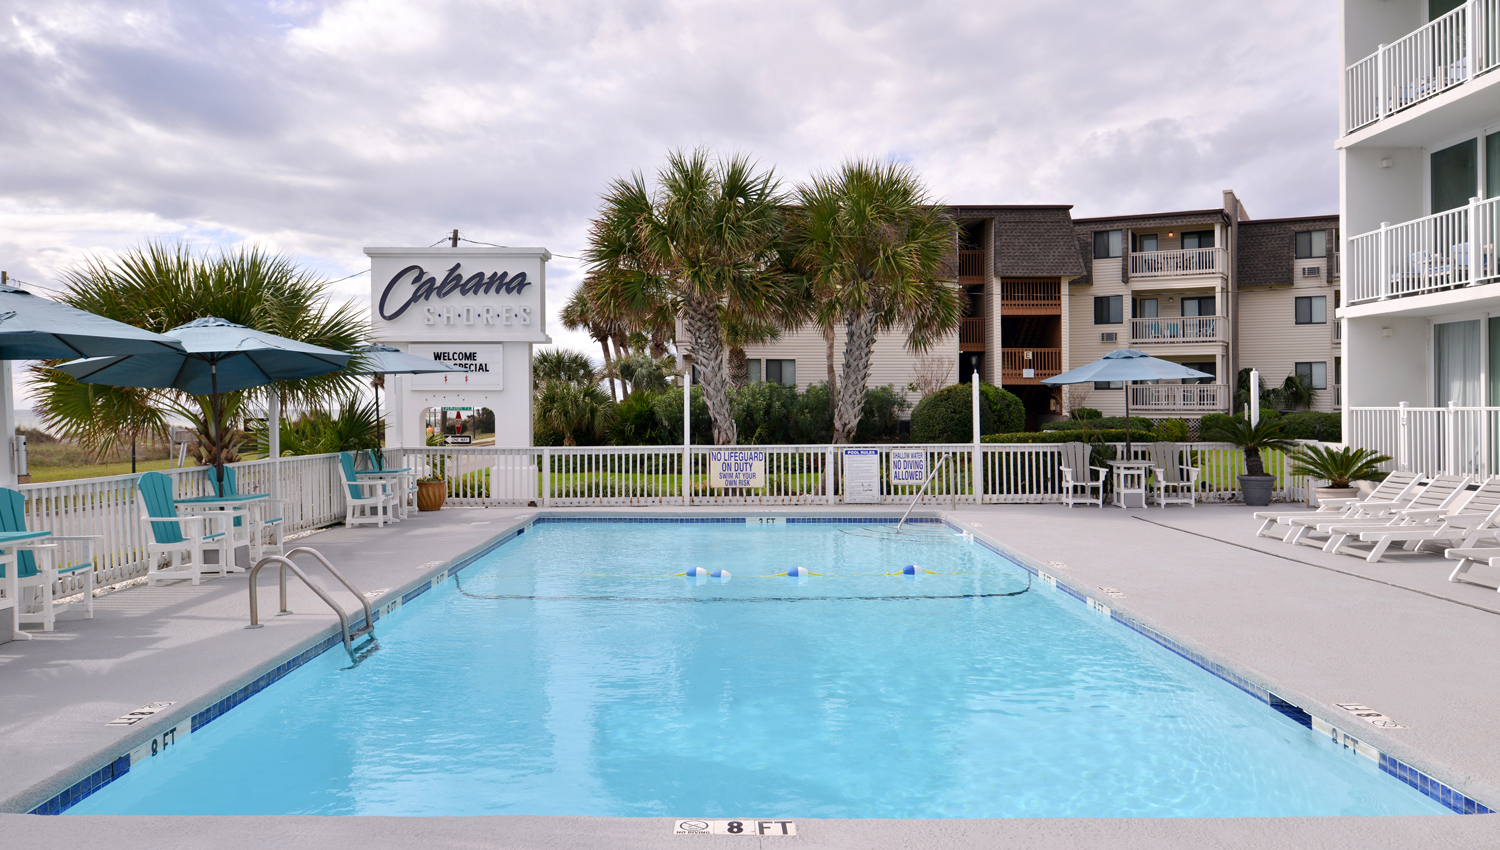 CABANA SHORES OFFERS OUTDOOR POOL FOR GUEST COMFORT IN MYRTLE BEACH